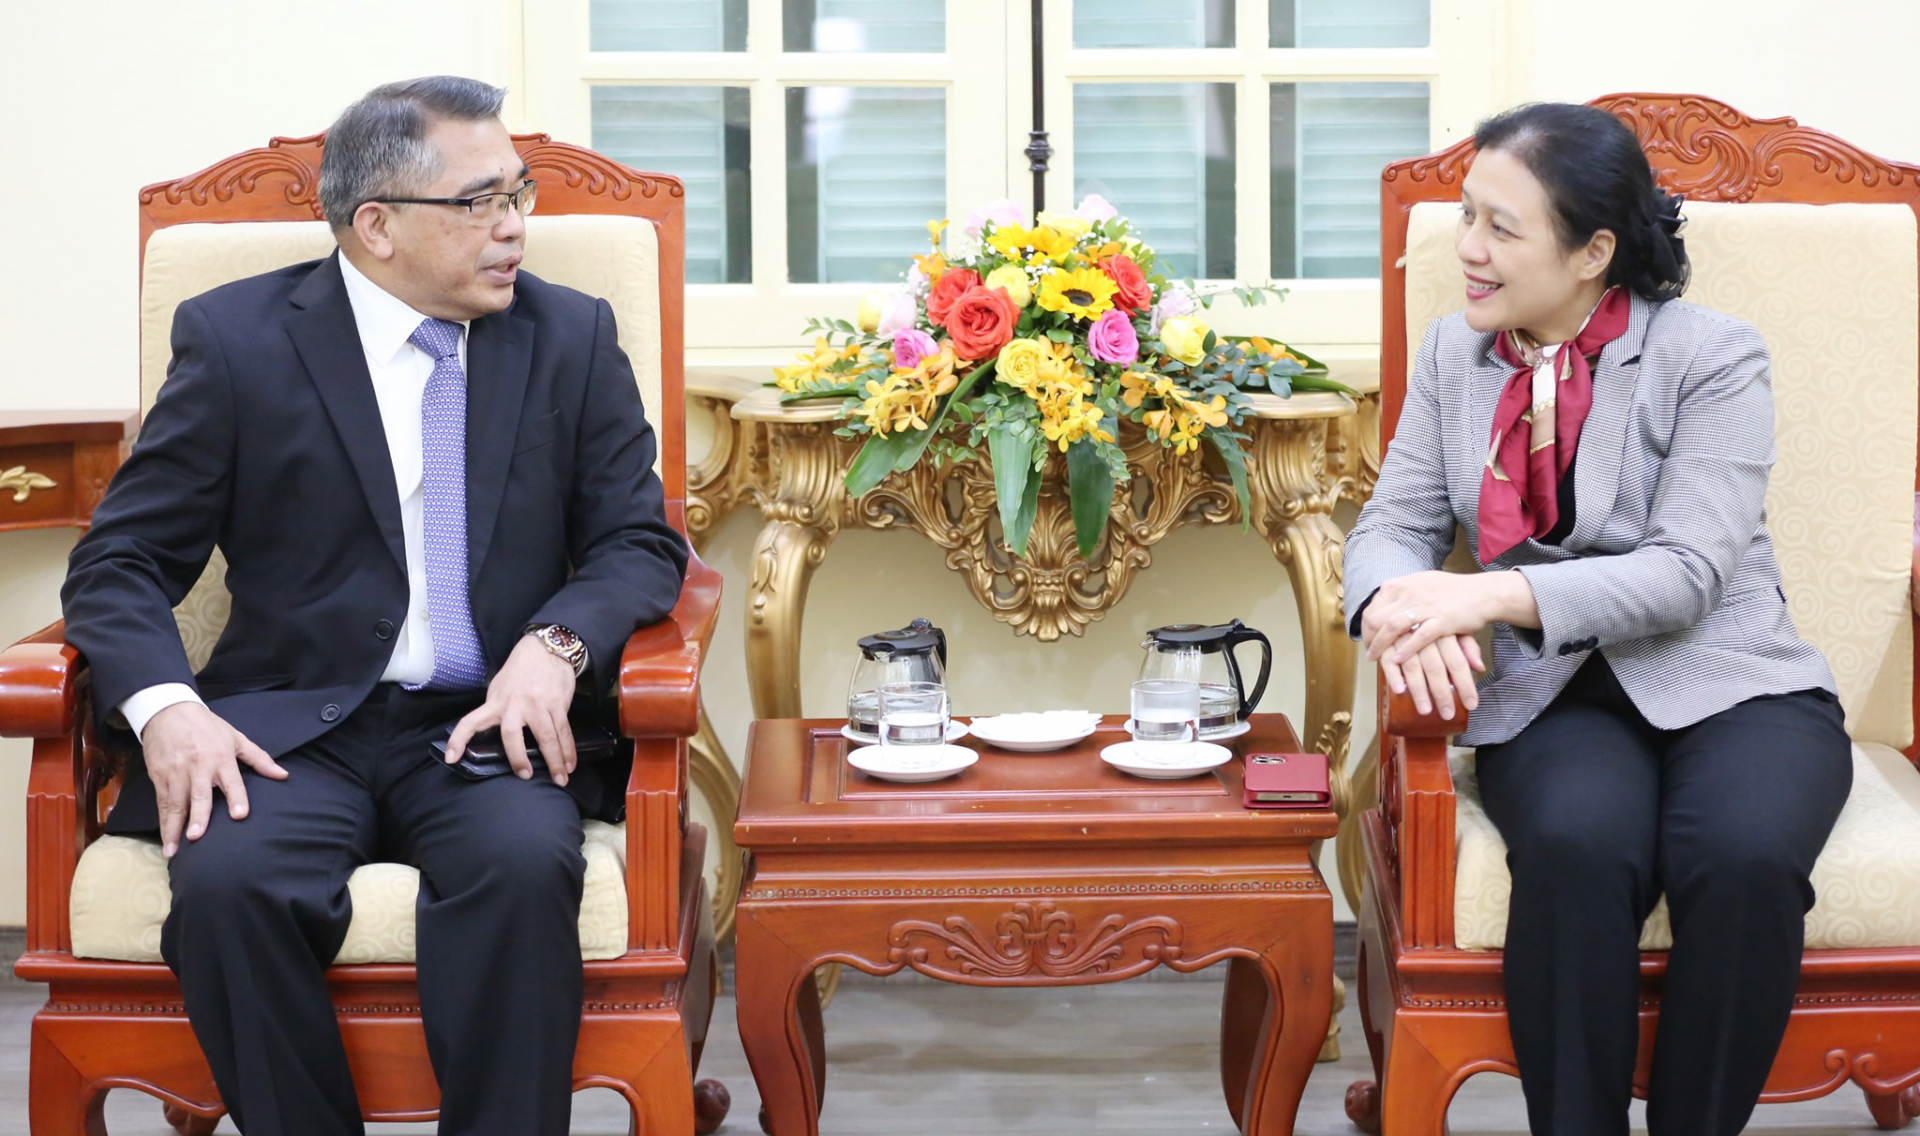 newly appointed ambassador of the republic of the philippines to pay a courtesy visit to the vufo president